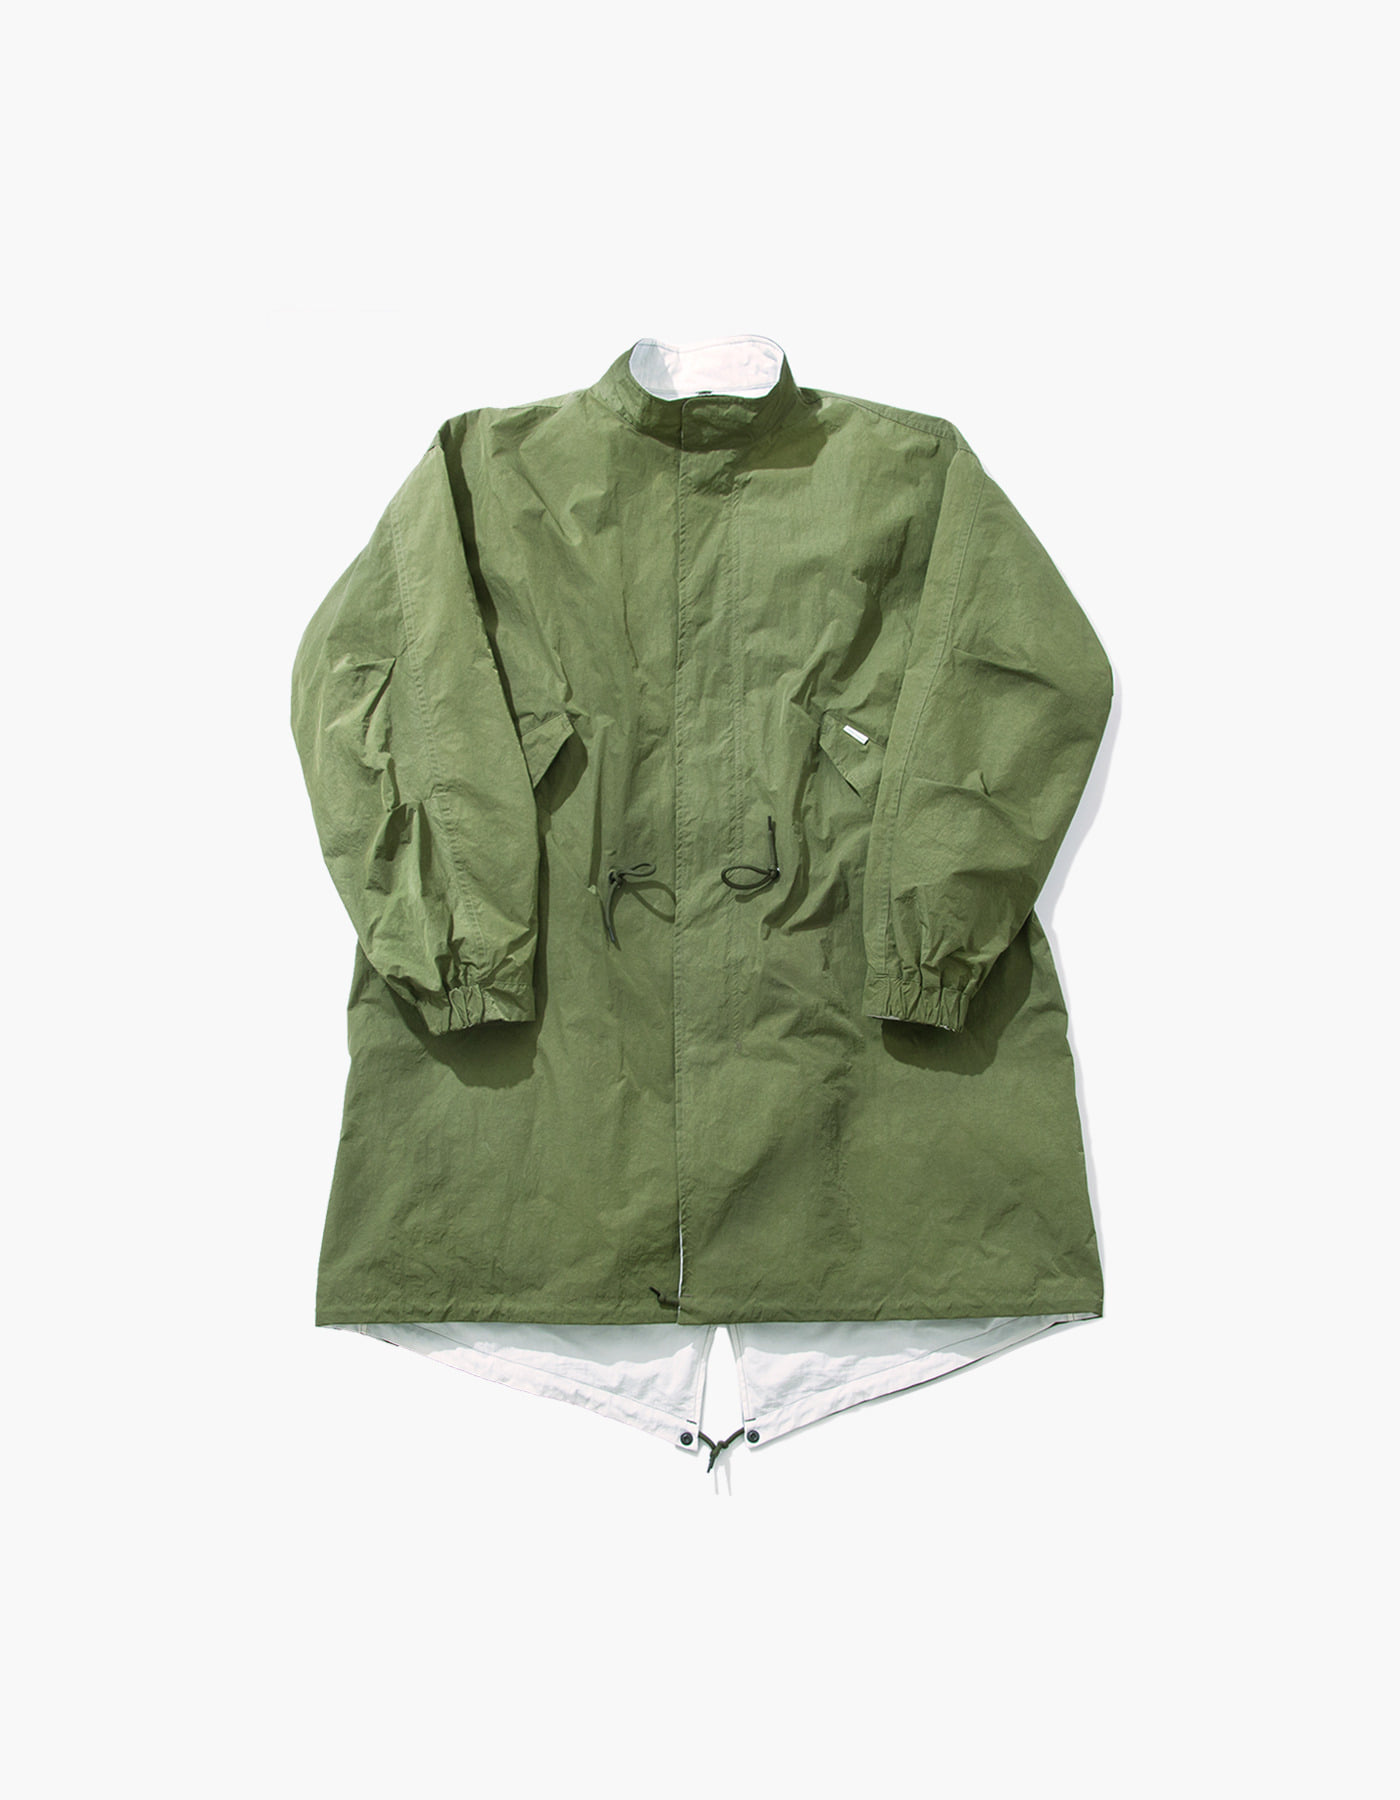 SALT NYLON REVERSIBLE FISHTAIL / OLIVE